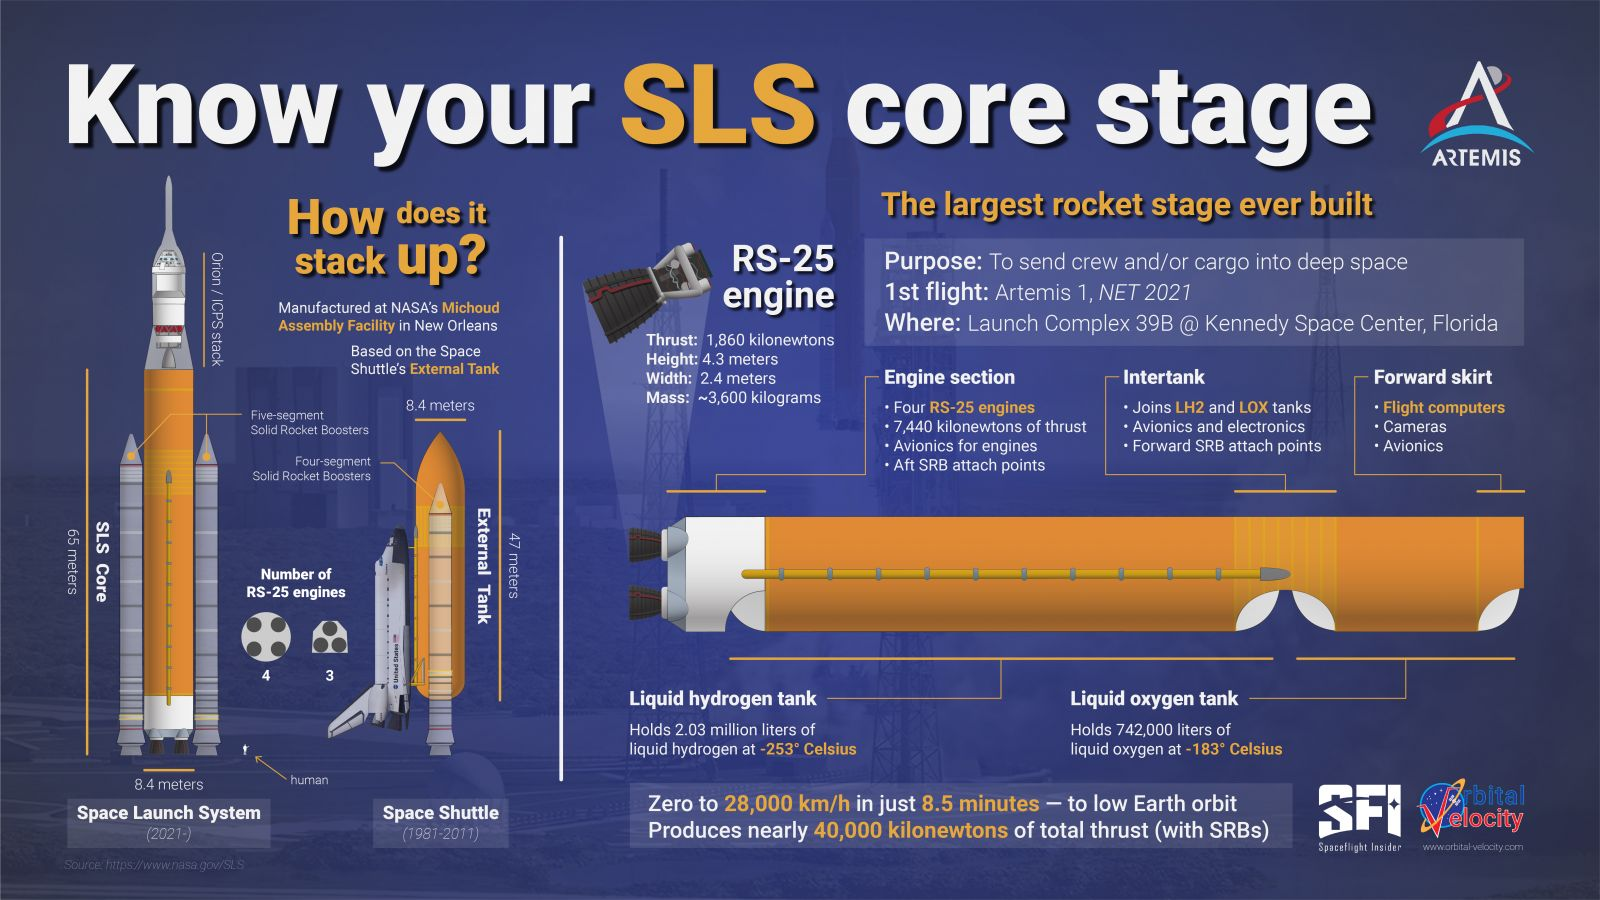 An infographic on the Space Launch System and how it compares to the space shuttle external tank. Credit: Derek Richardson / Spaceflight Insider / Orbital Velocity